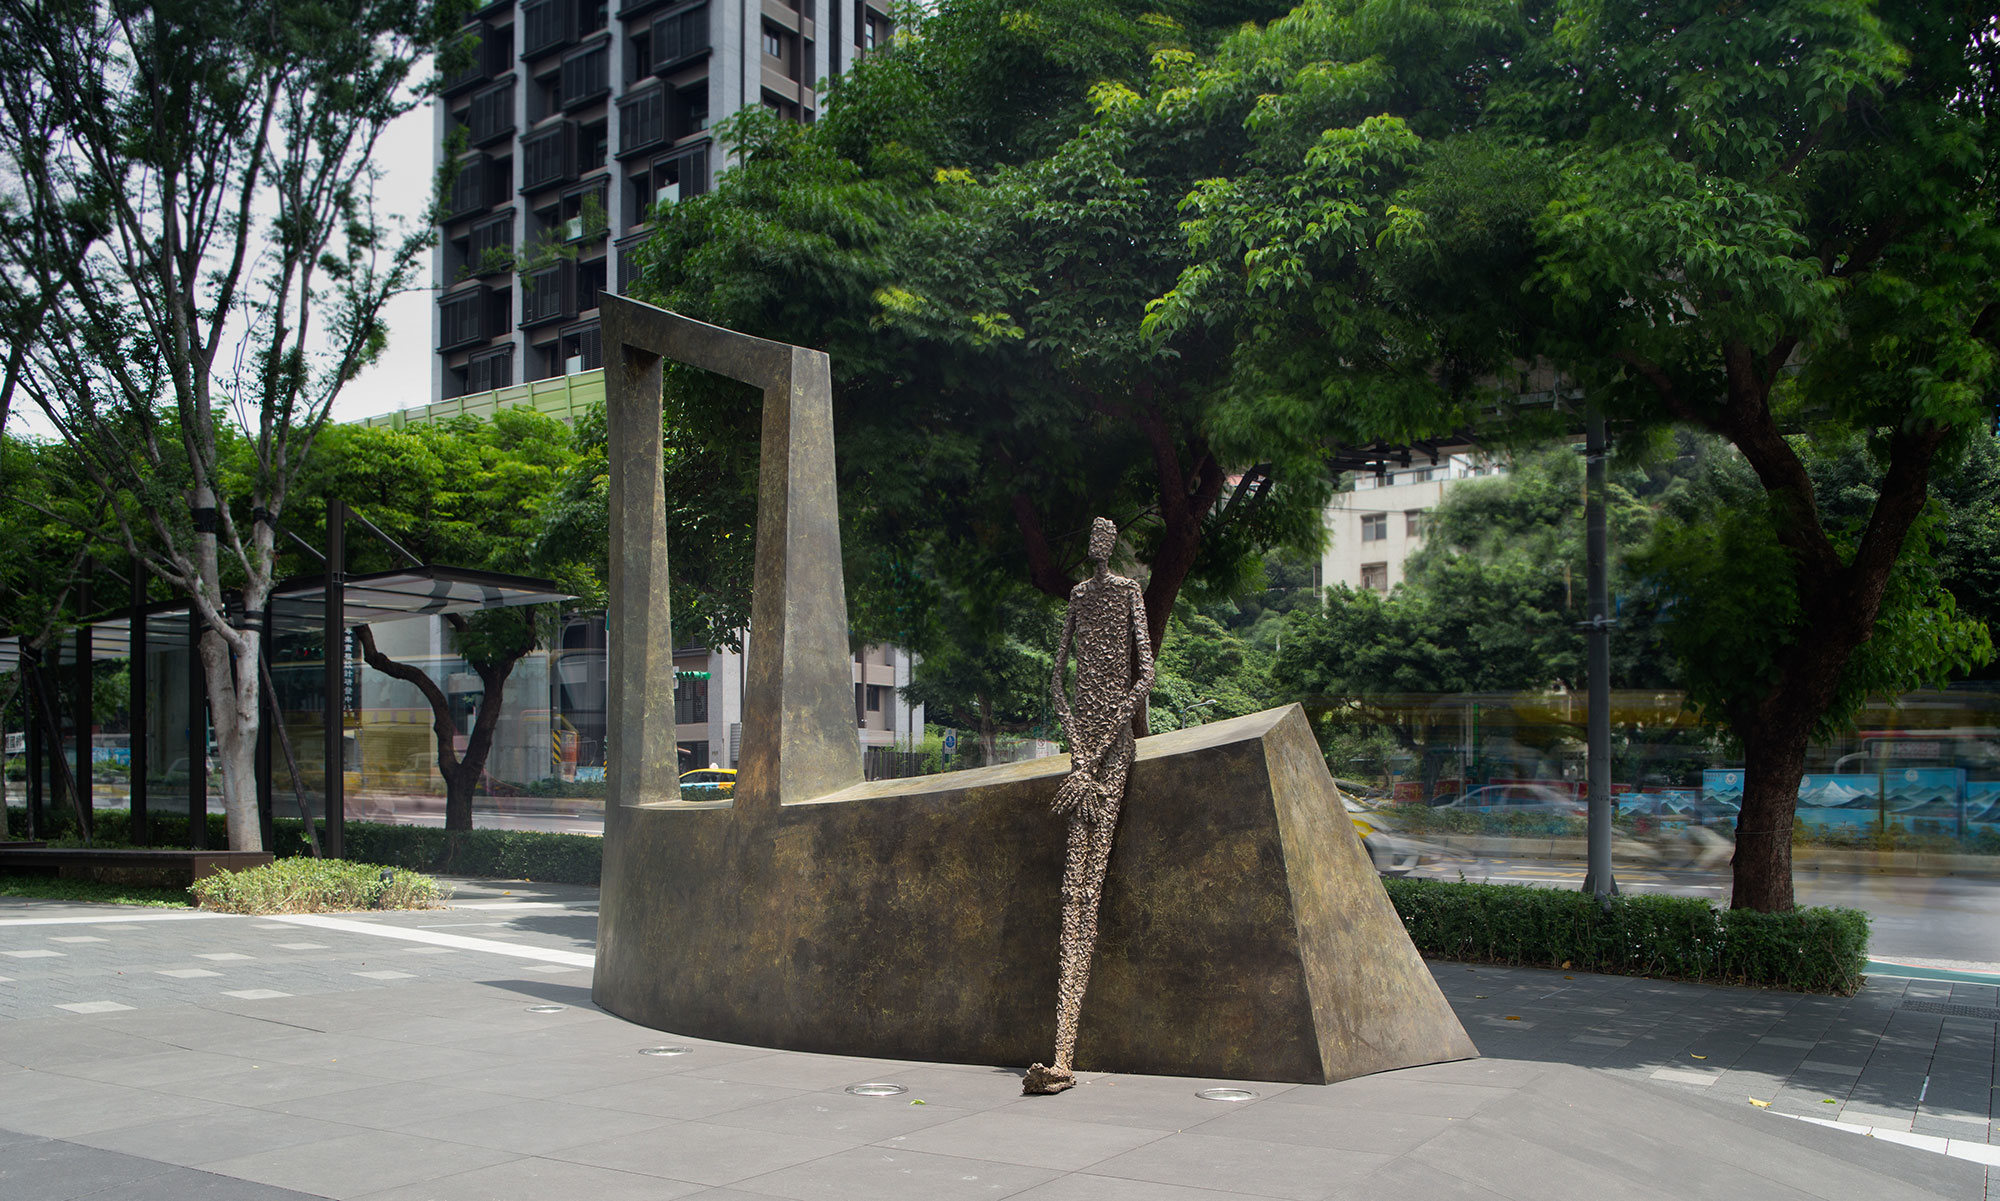 Waiting III by French sculptor Val - Valérie Goutard - with Sculptureval at New Square in Taipei - Taiwan